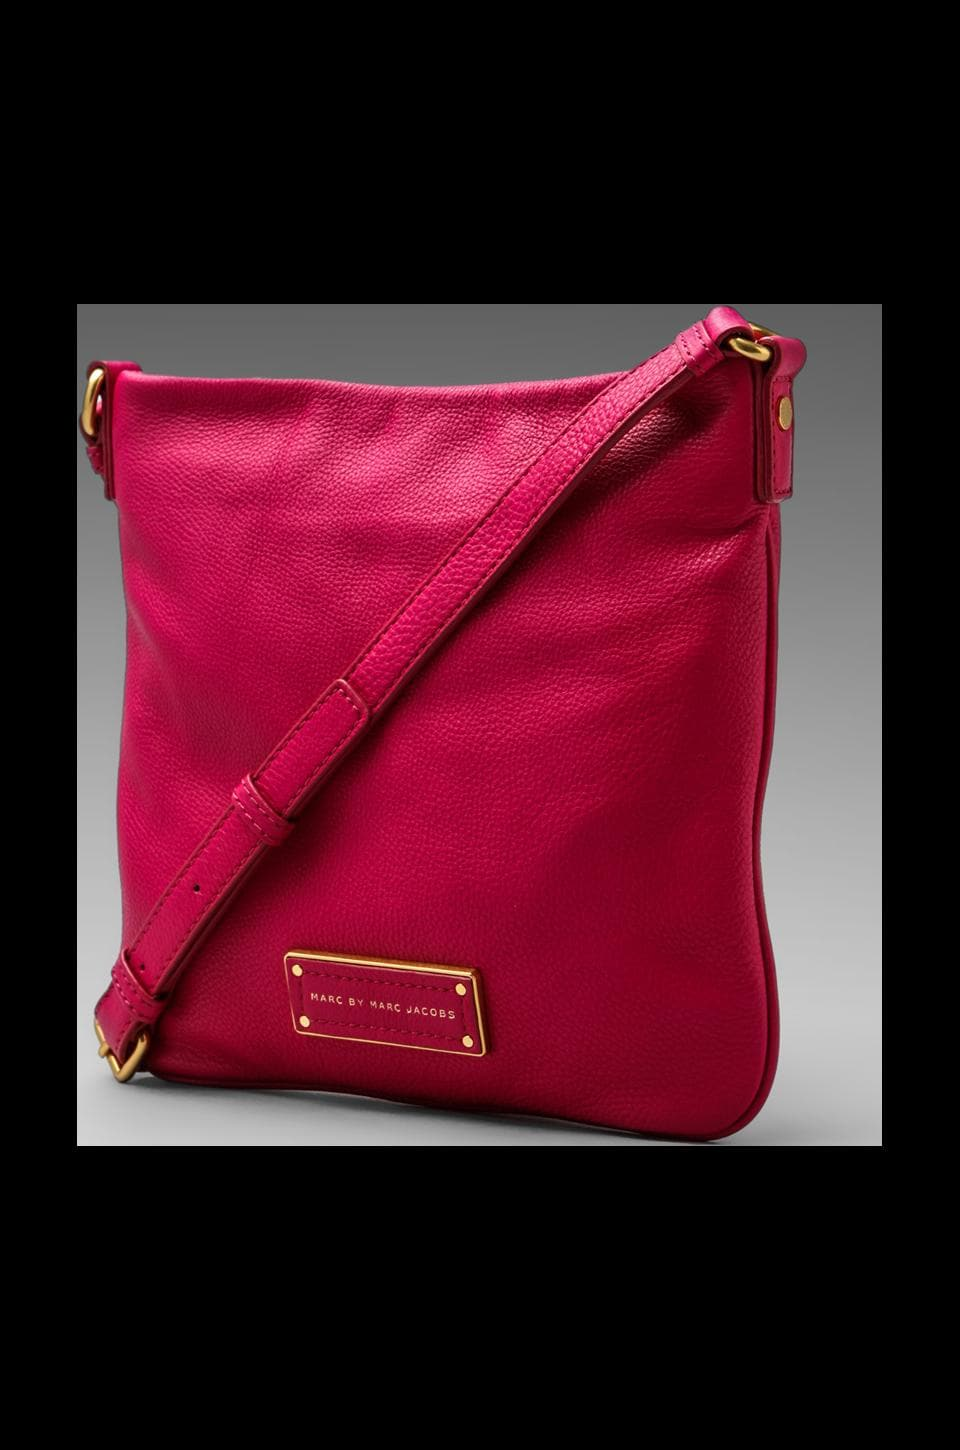 Marc by Marc Jacobs Too Hot to Handle Sia in Fuchsia